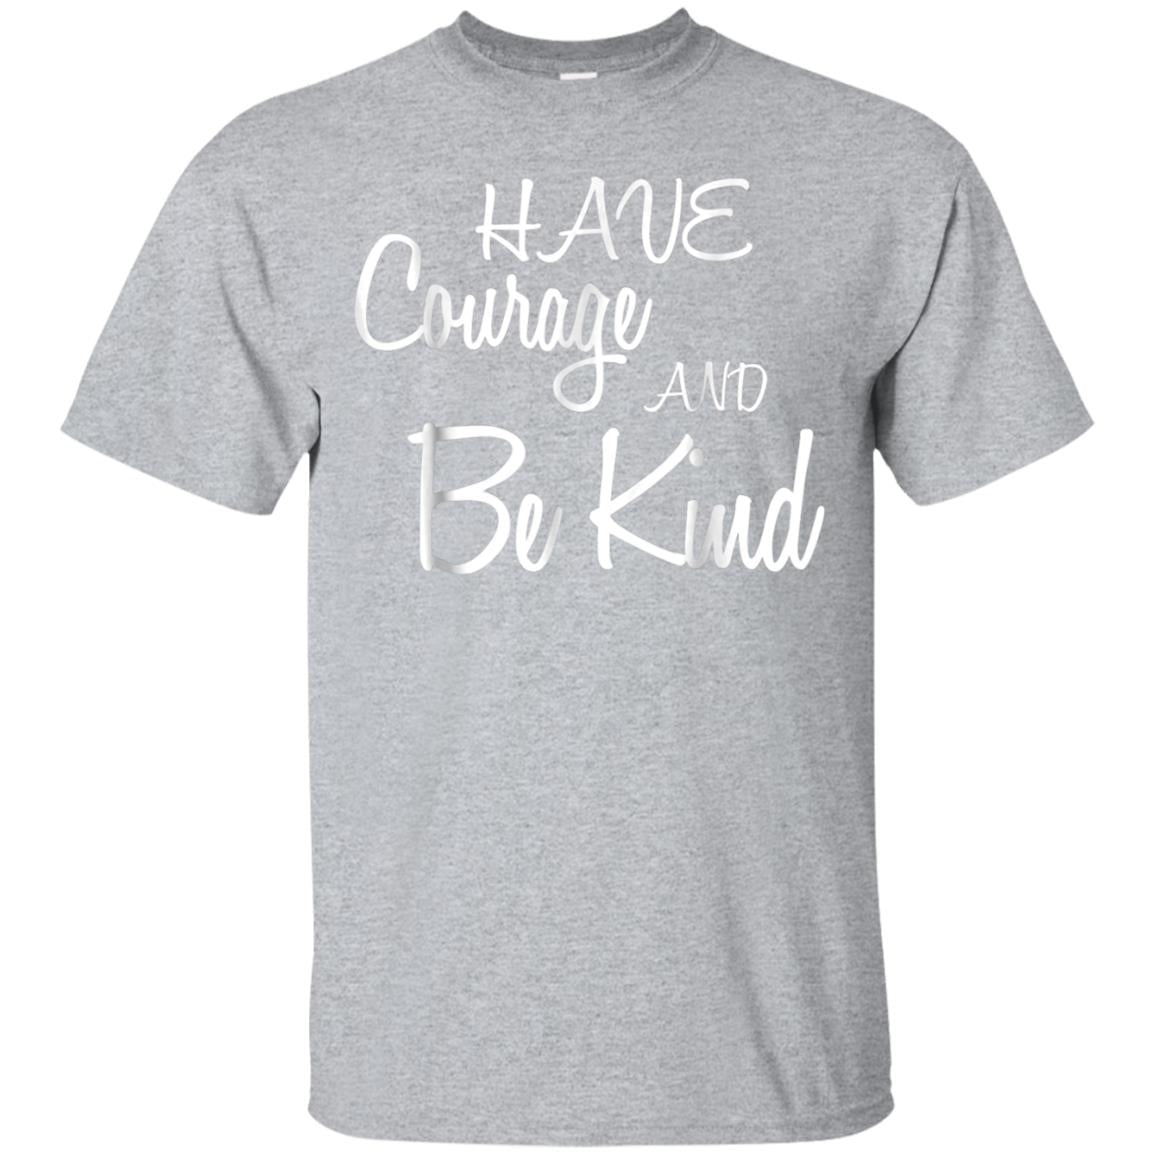 Have Courage And Be Kind T-Shirt Cute Kindness Quote Tee 99promocode